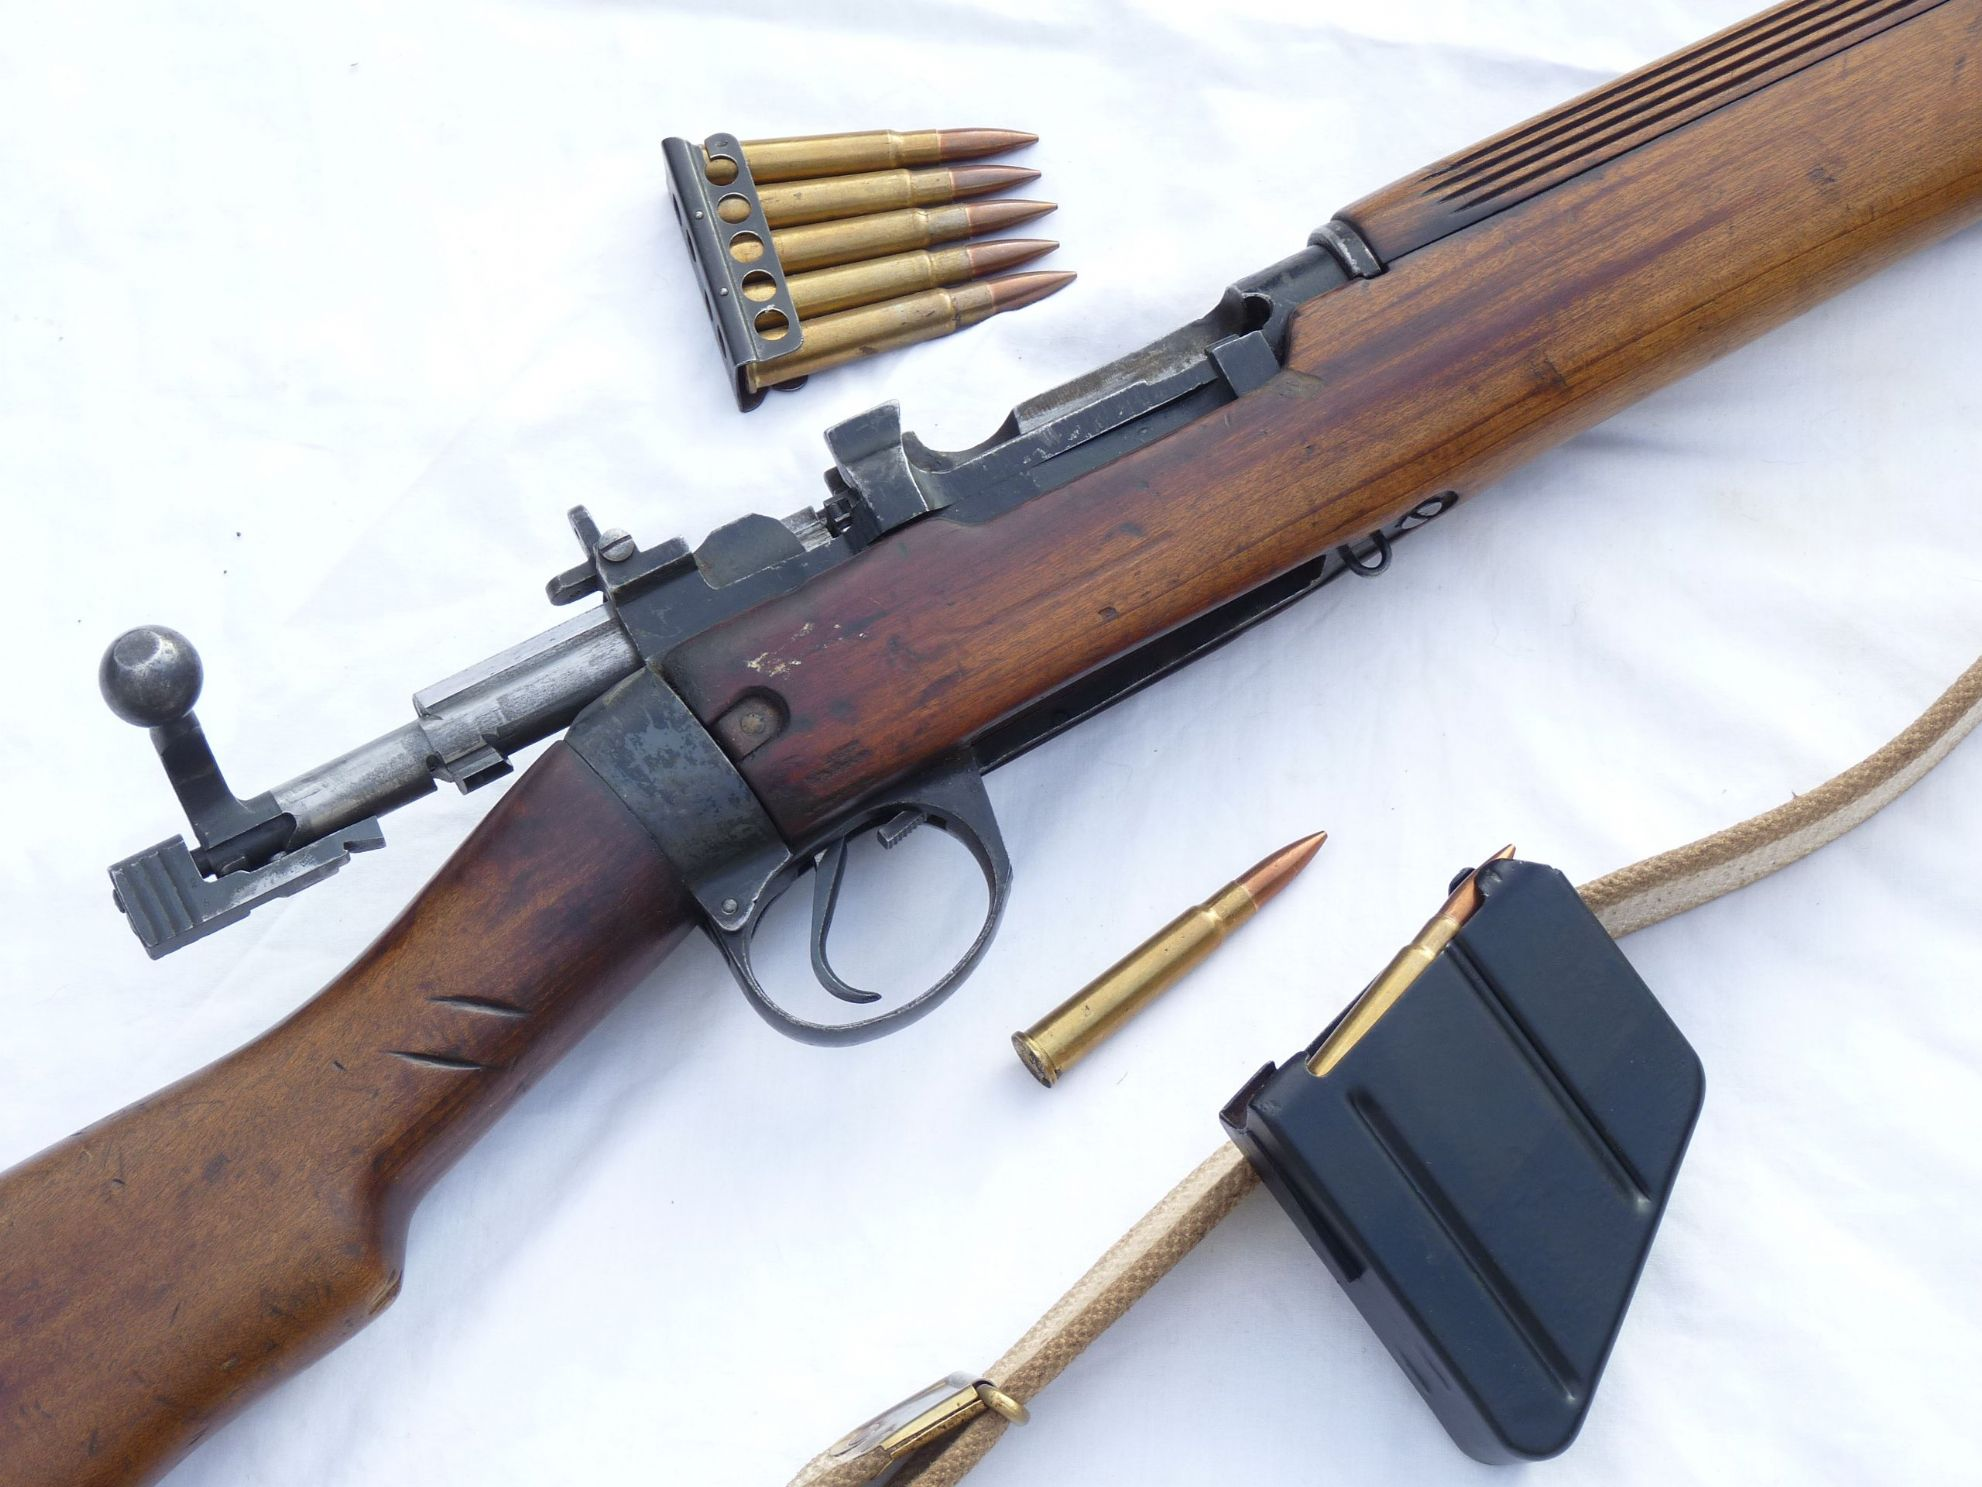 Deactivated Lee-Enfield no4 mk1 Canadian Longbranch made